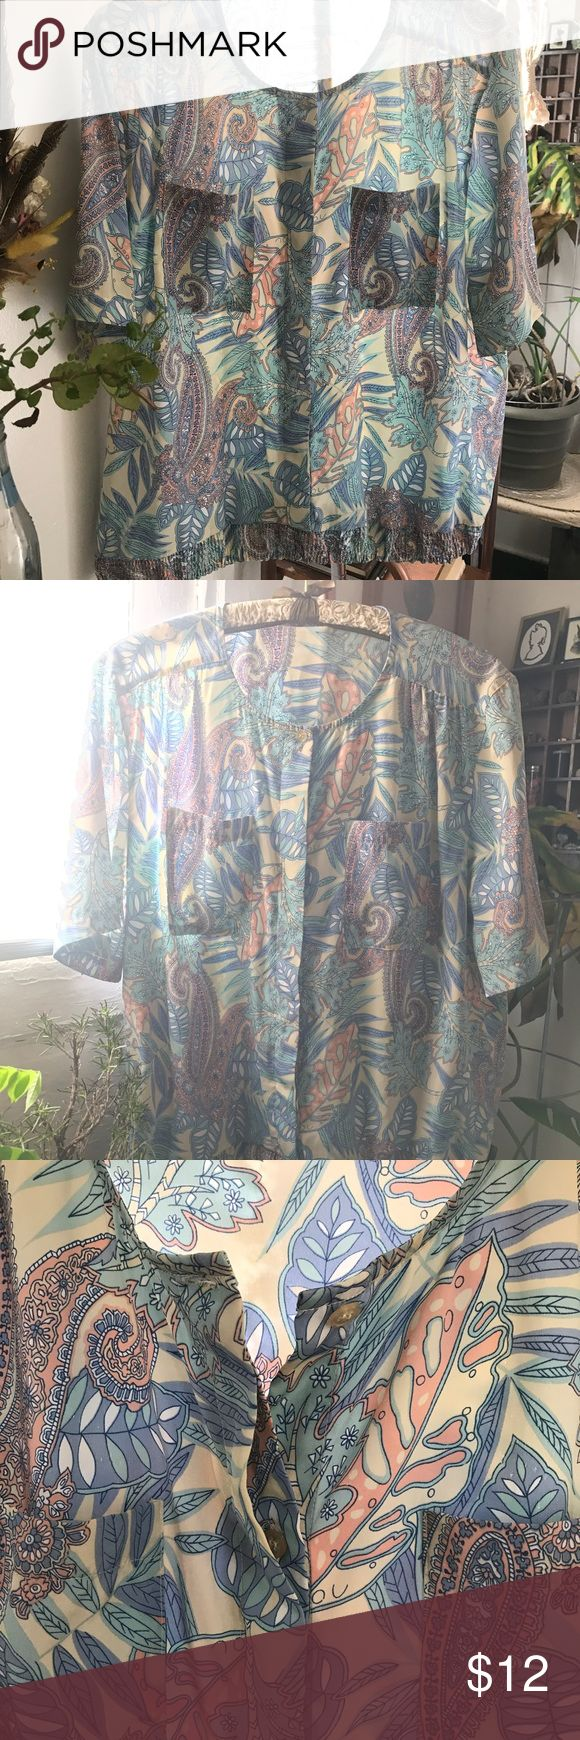 Golden Girls Vintage Pastel Floral Leisure Blouse Golden Girls inspired Pastel paisley/floral semi-tropical late 80s polyester leisure top. Thin and breezy with a scoop neck hidden-button up top coming together in a casual elastic waist for days when you're in the sun, sailing or half passing out with a glass of wine in a real or imaginary hammock. A size L but looks best on S. Could be easily modified into a dope crop top for summer when you need to be water balloon fight ready. Tops…